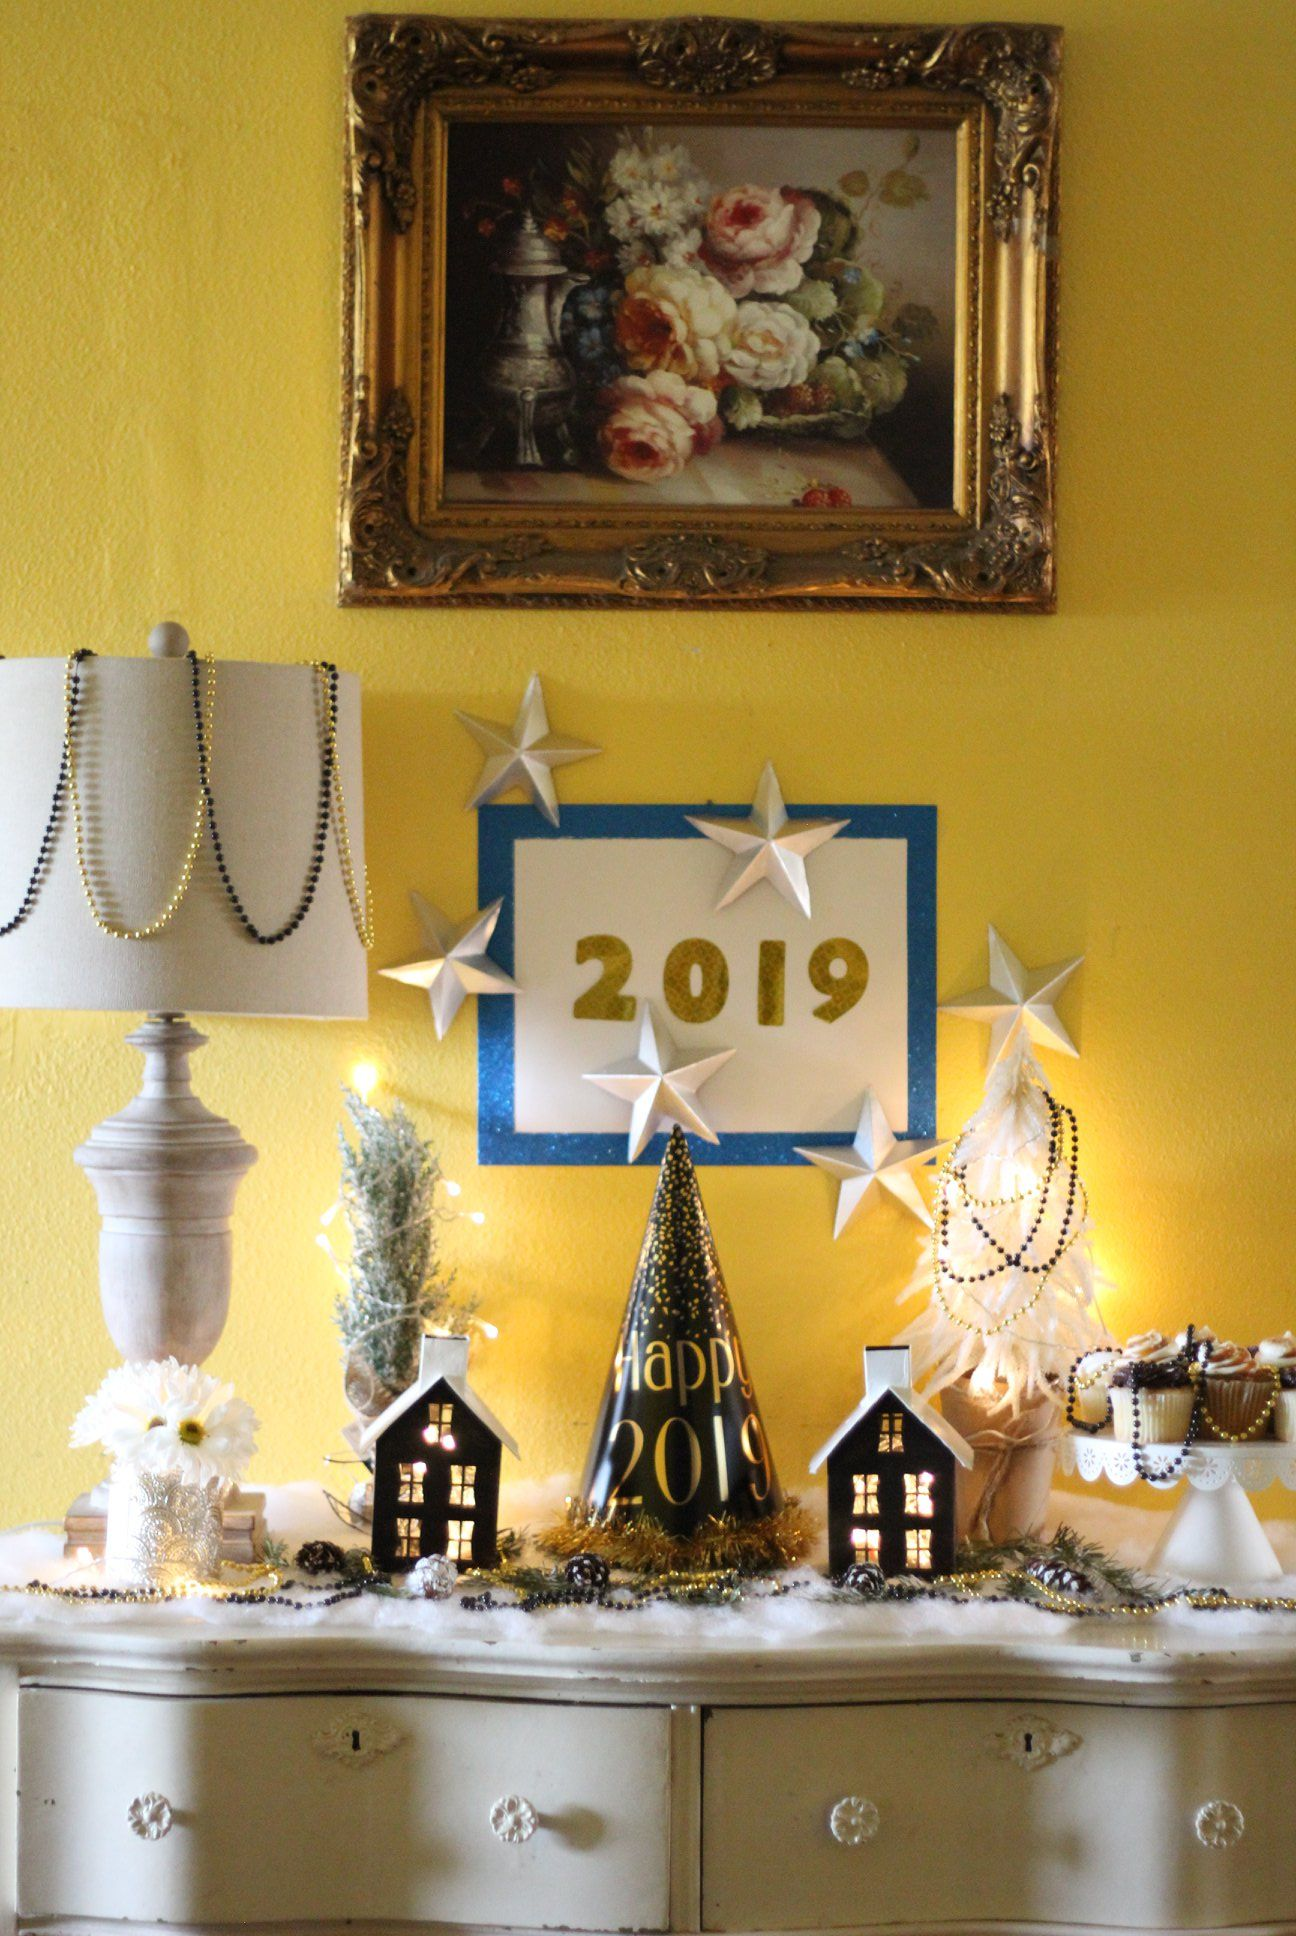 Upcycle Christmas Decoration For Your New Year's Eve Party